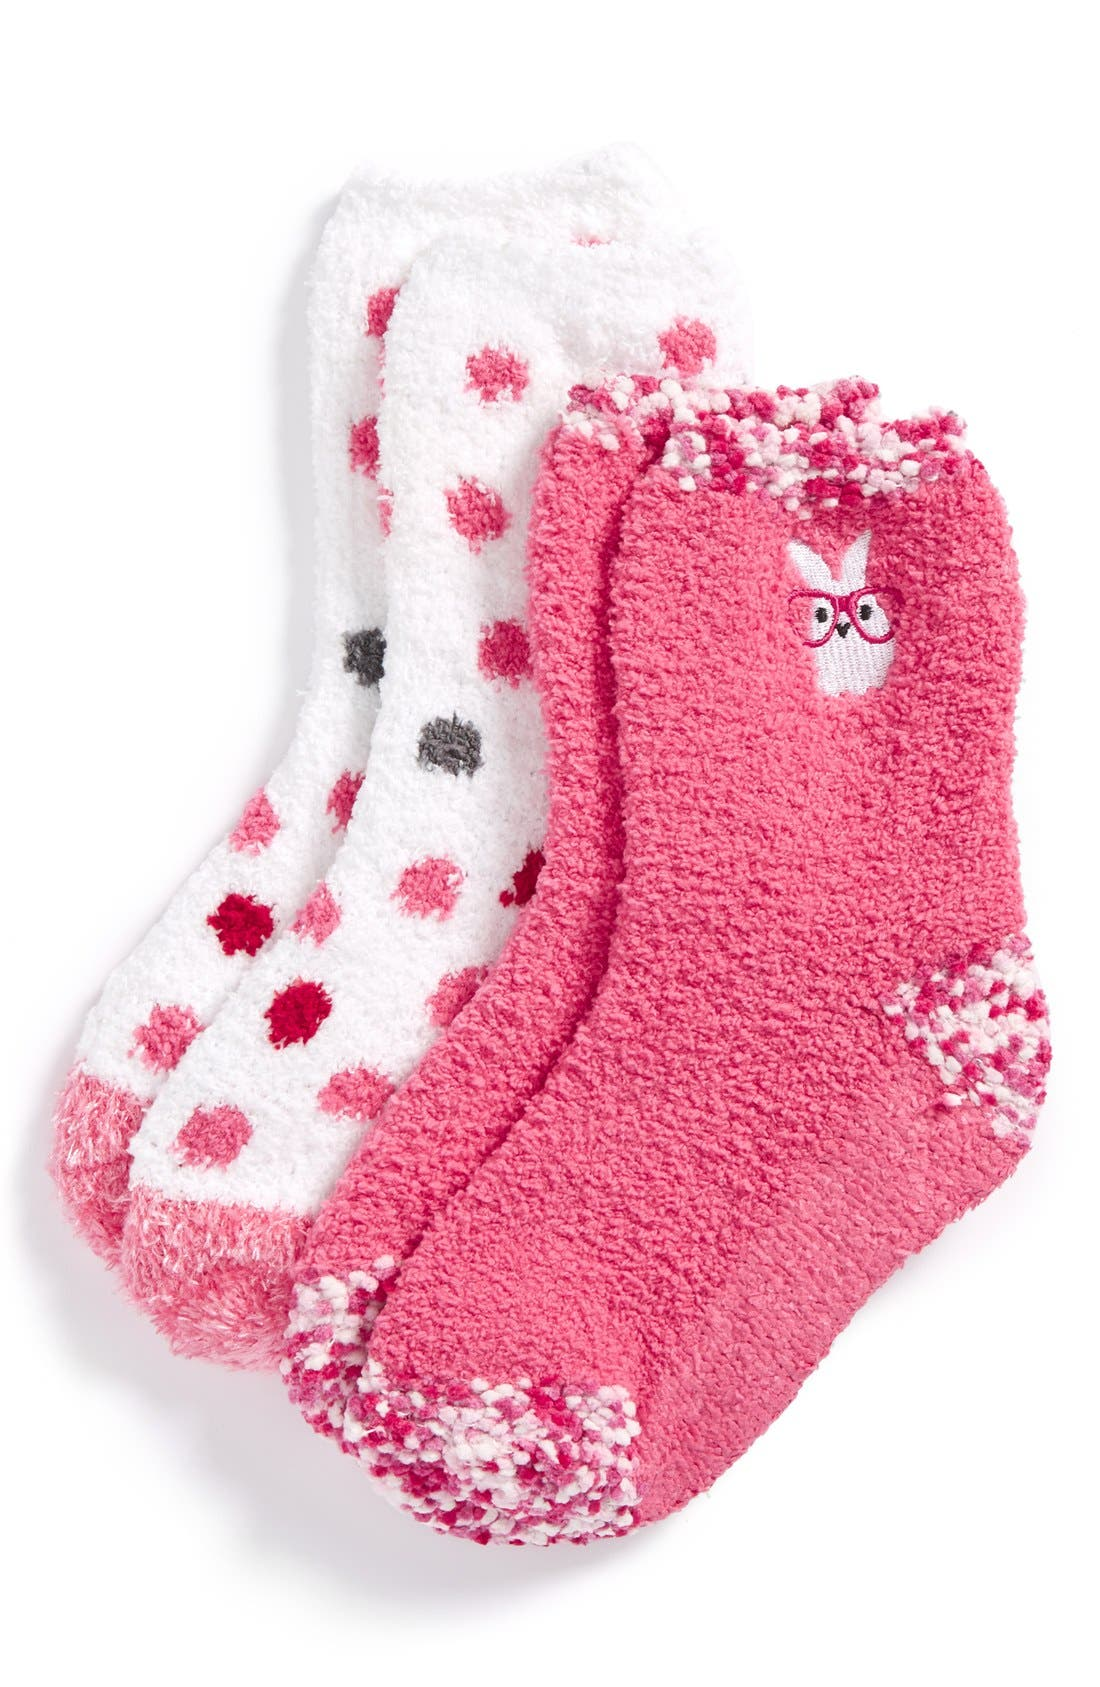 girl 'Bunny' Nonskid Fuzzy Socks,                             Main thumbnail 1, color,                             650